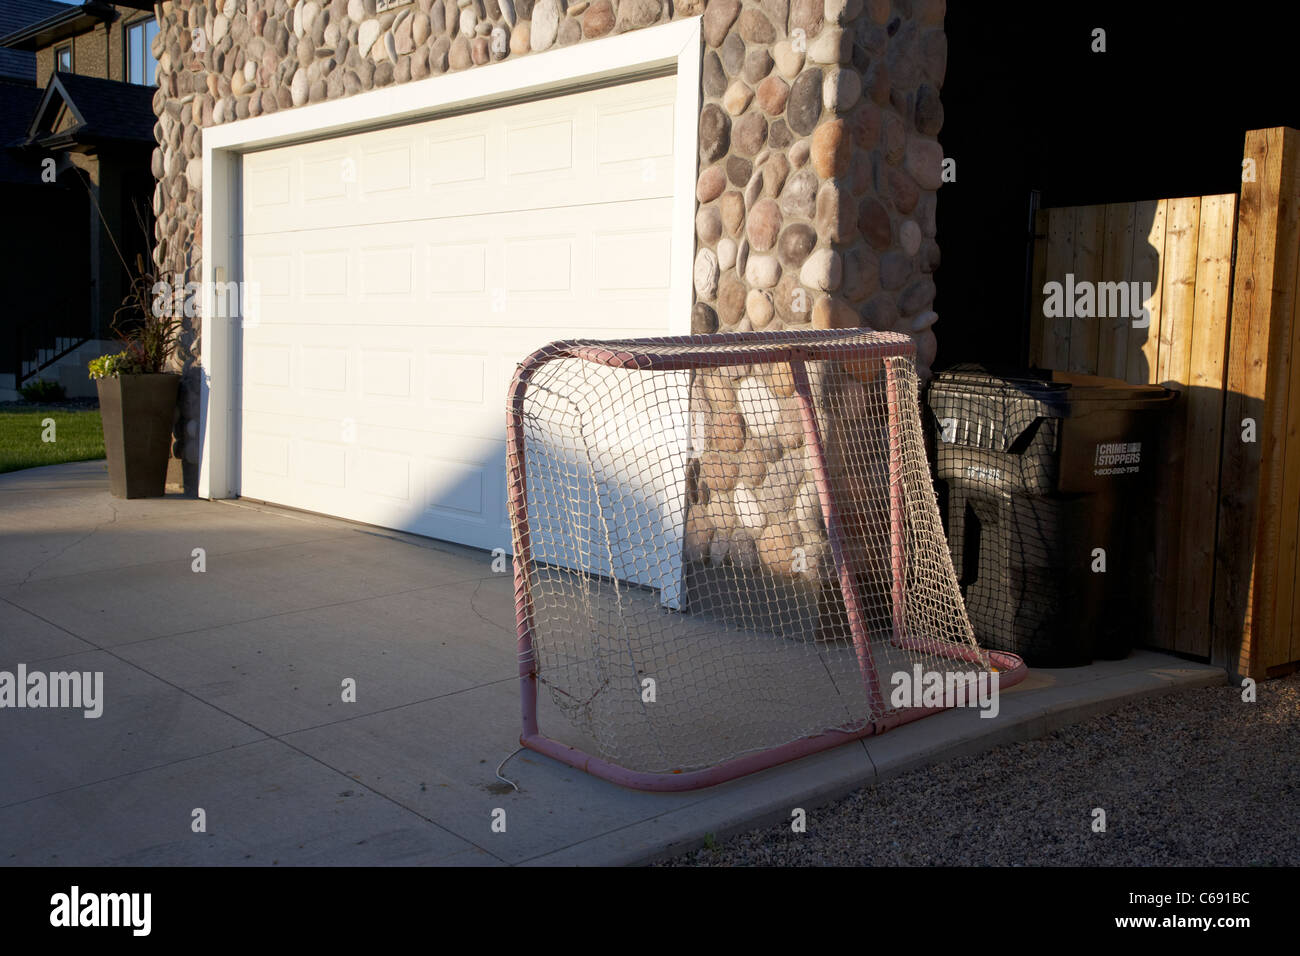 ice hockey goal on house driveway in Saskatoon Saskatchewan Canada - Stock Image